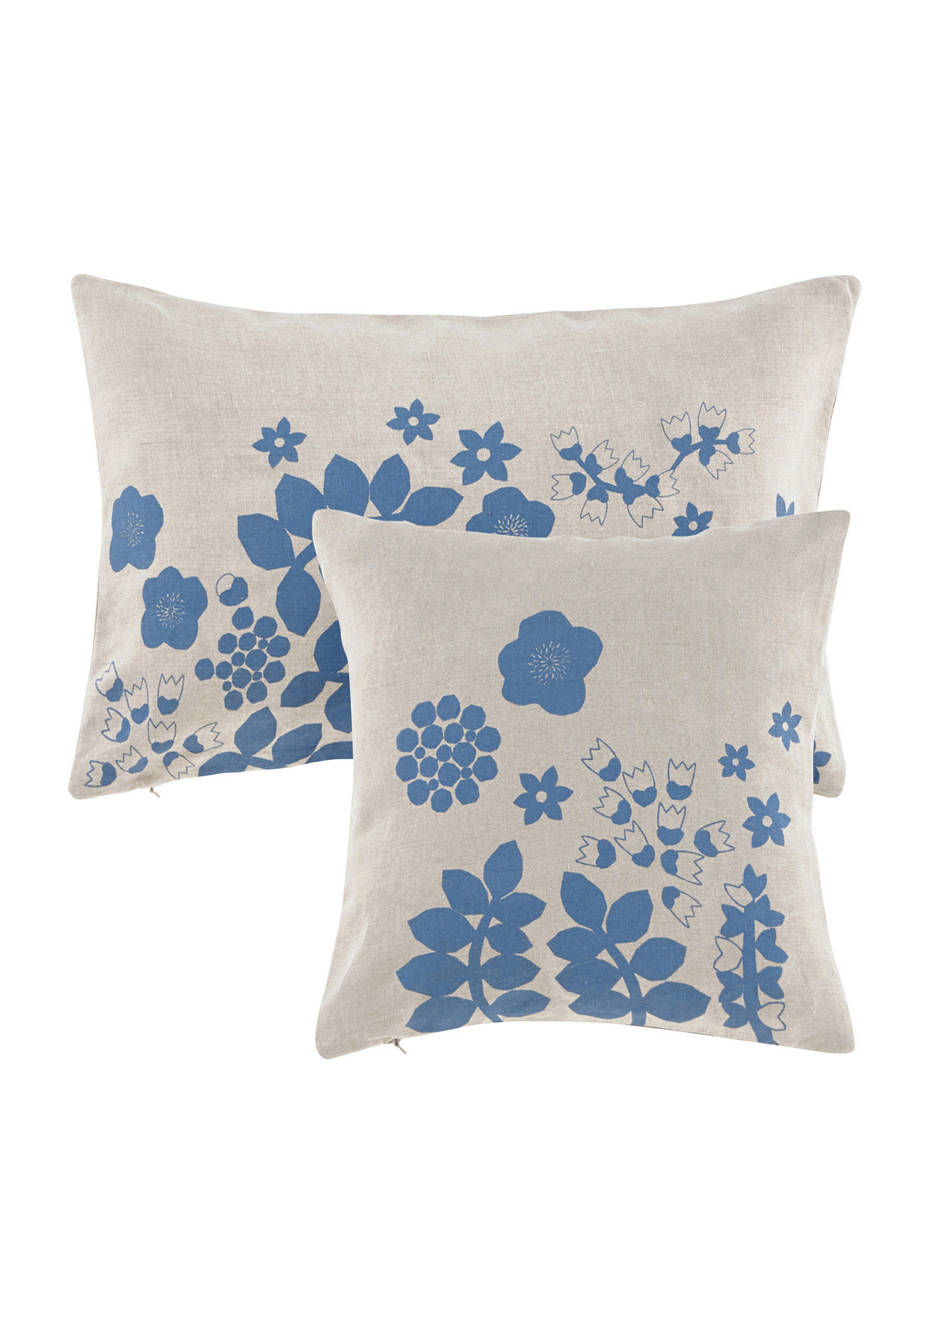 Leila cushion cover made of pure linen